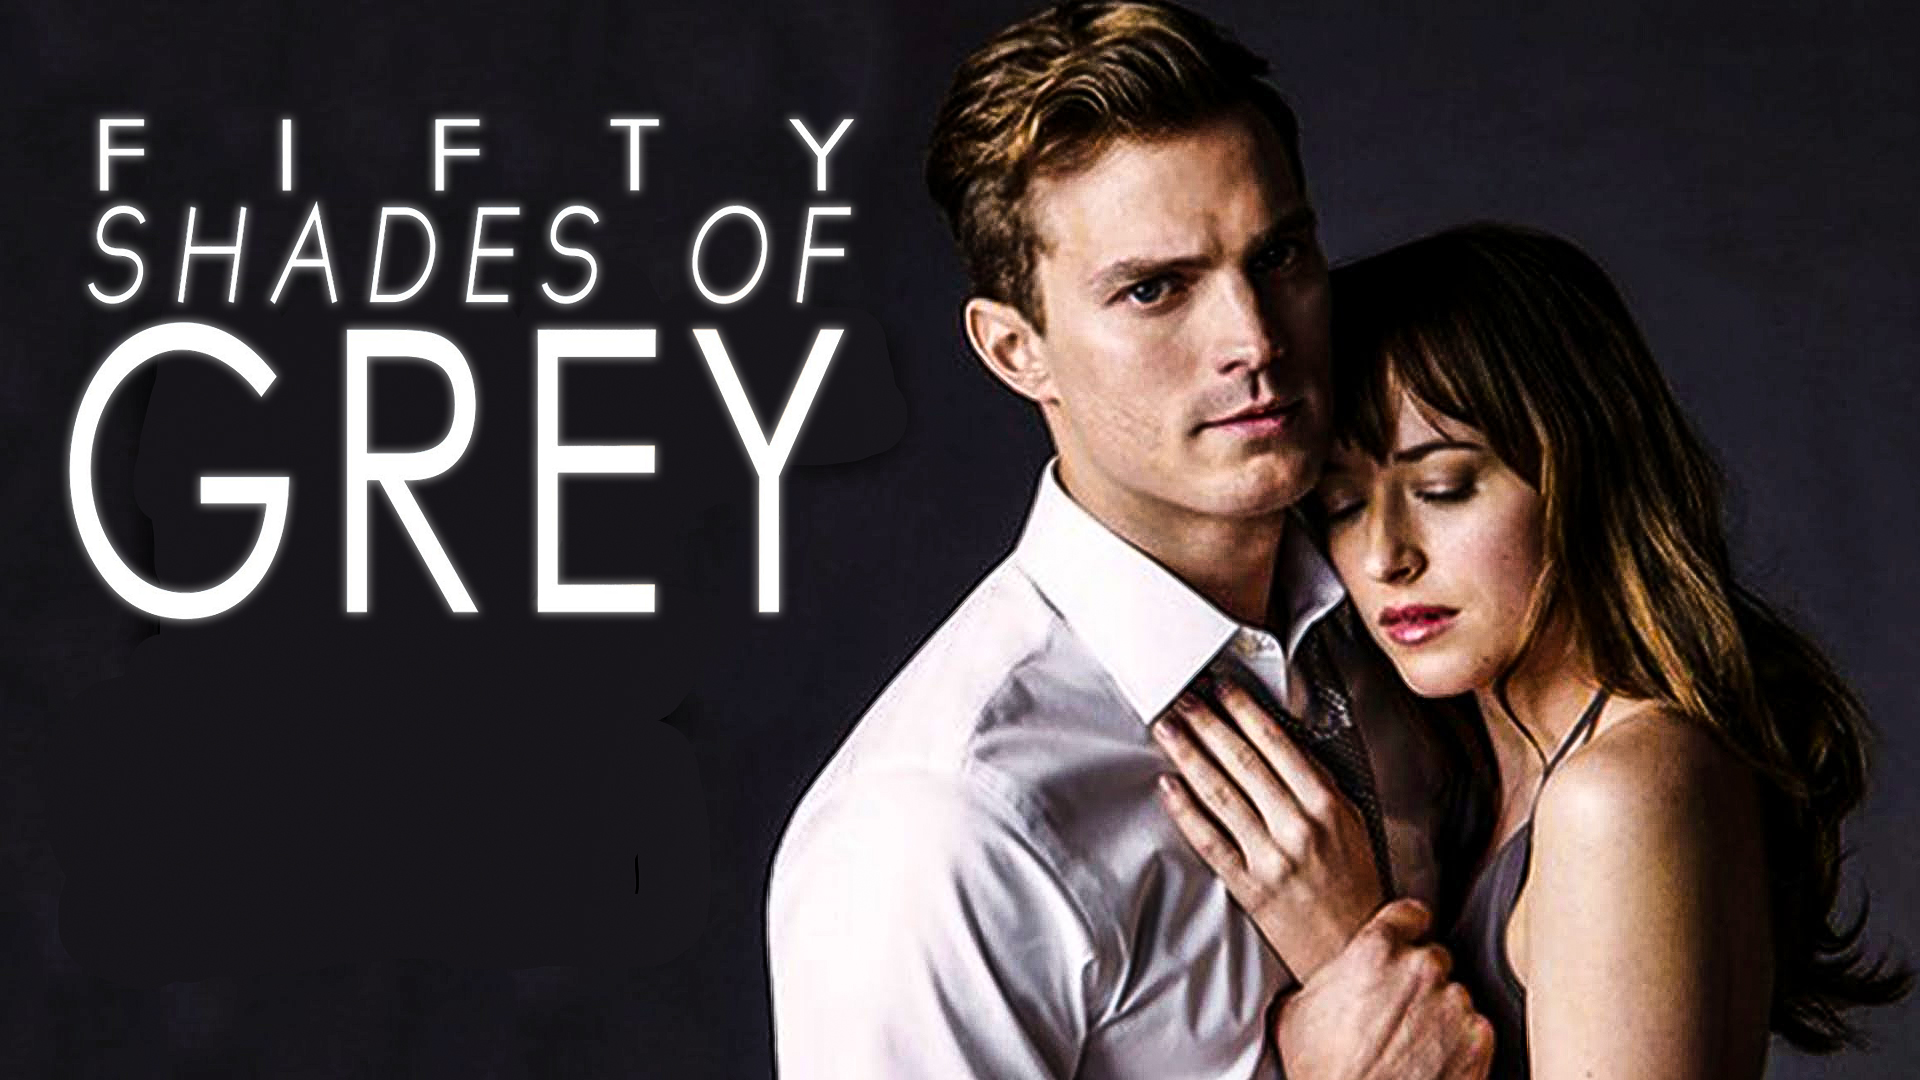 50 shades of grey live chat gets an online twitter for Fifty shades og grey